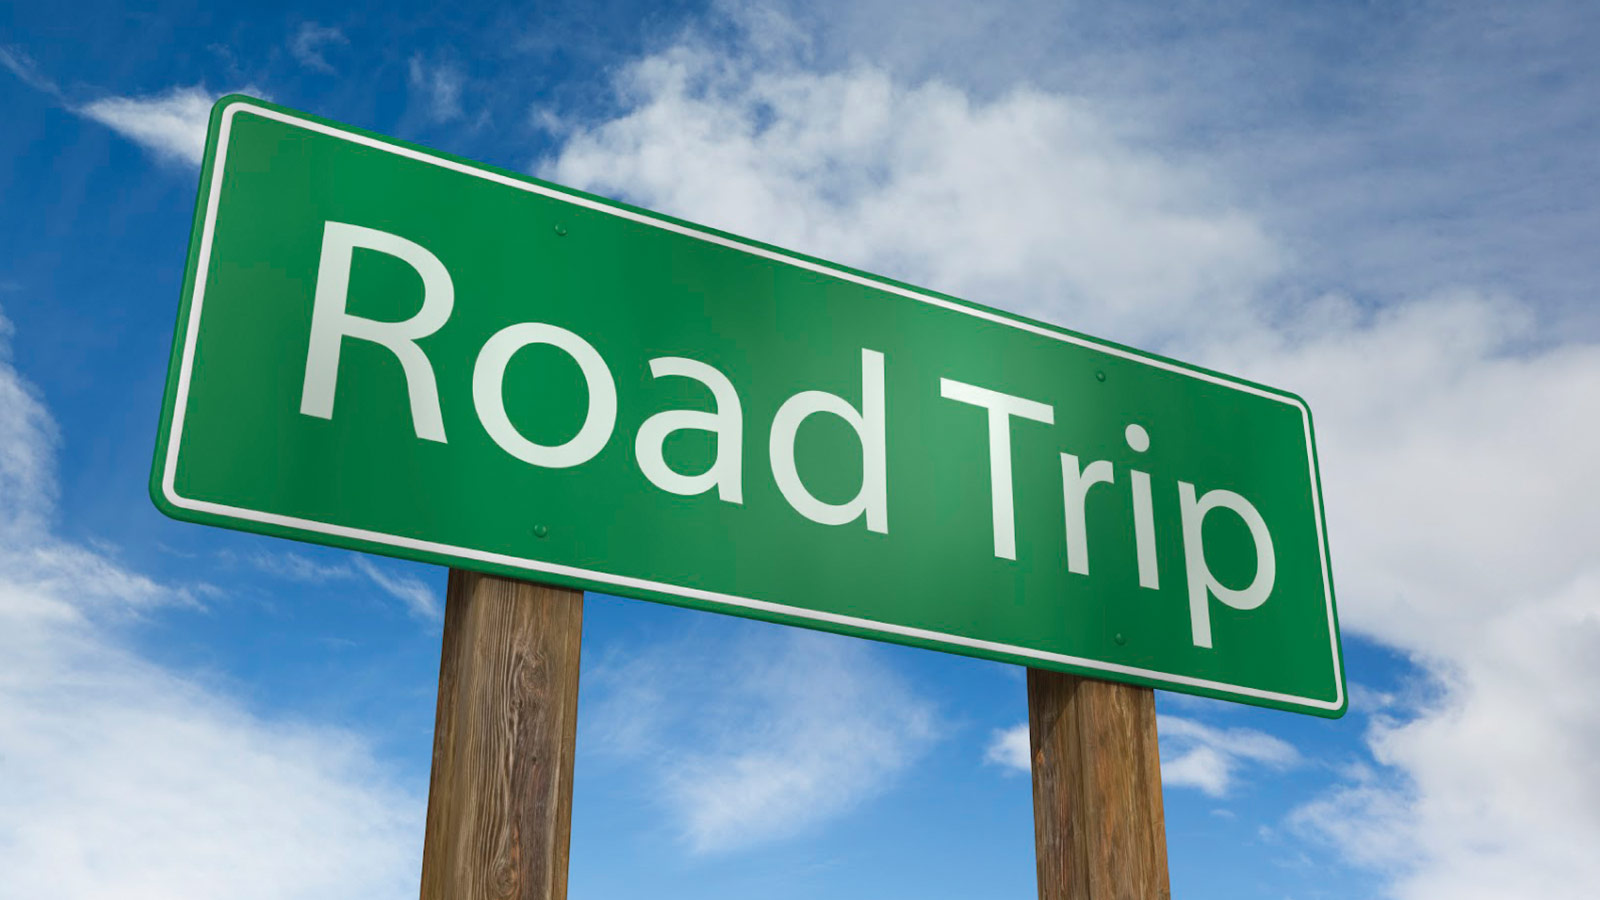 Highlighting some of the best travel jokes for a family road trip